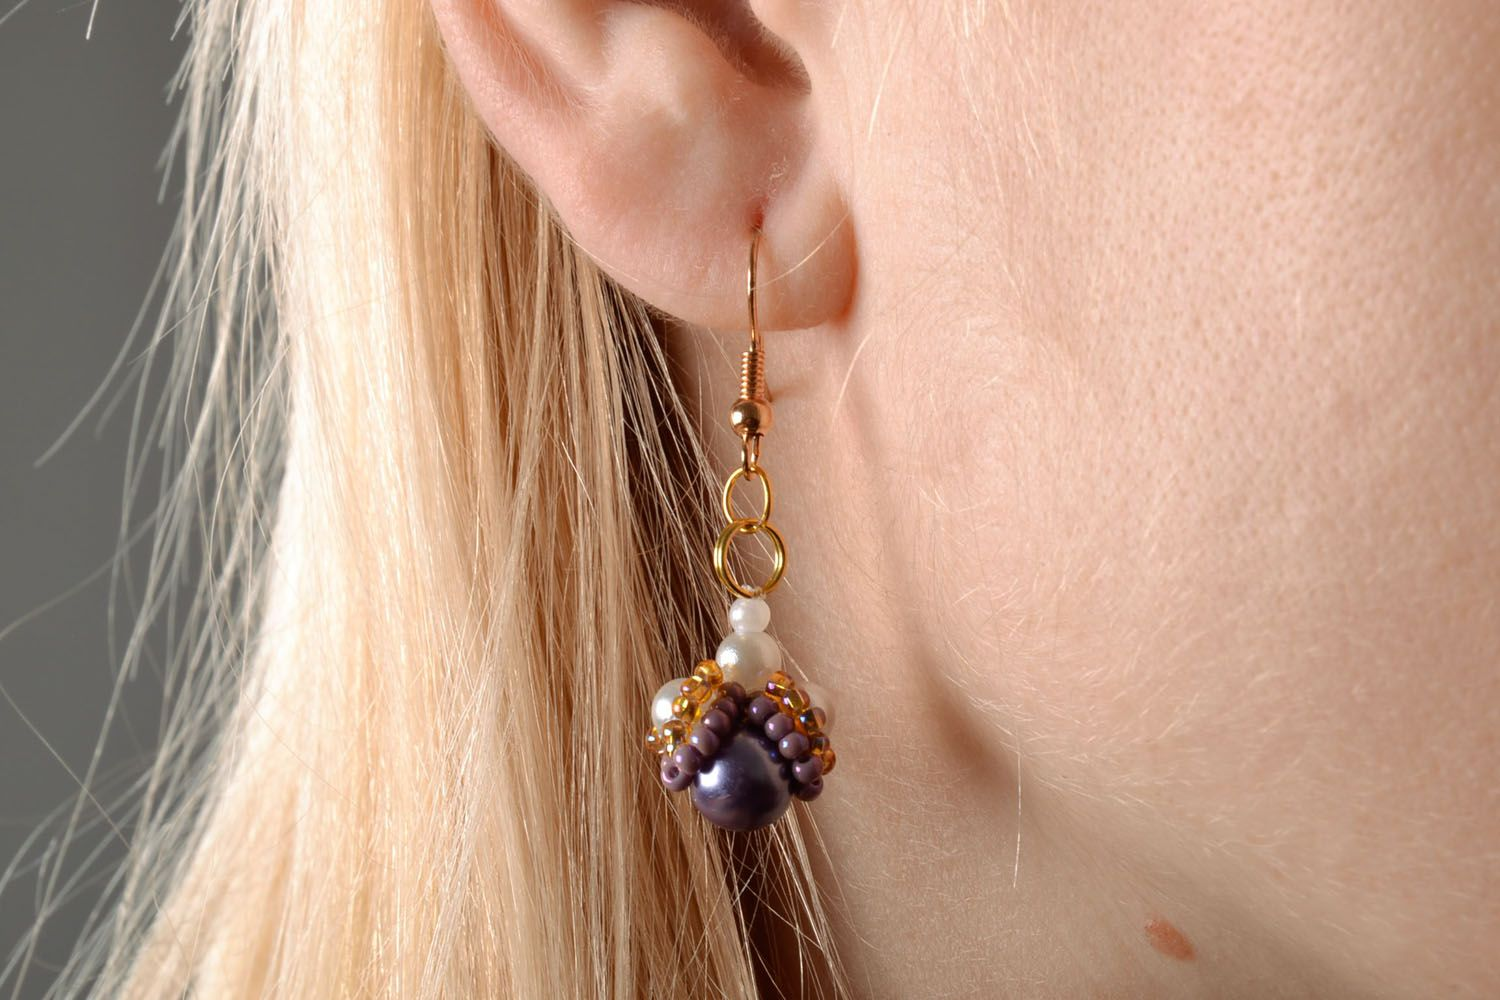 Beaded earrings with charms photo 5